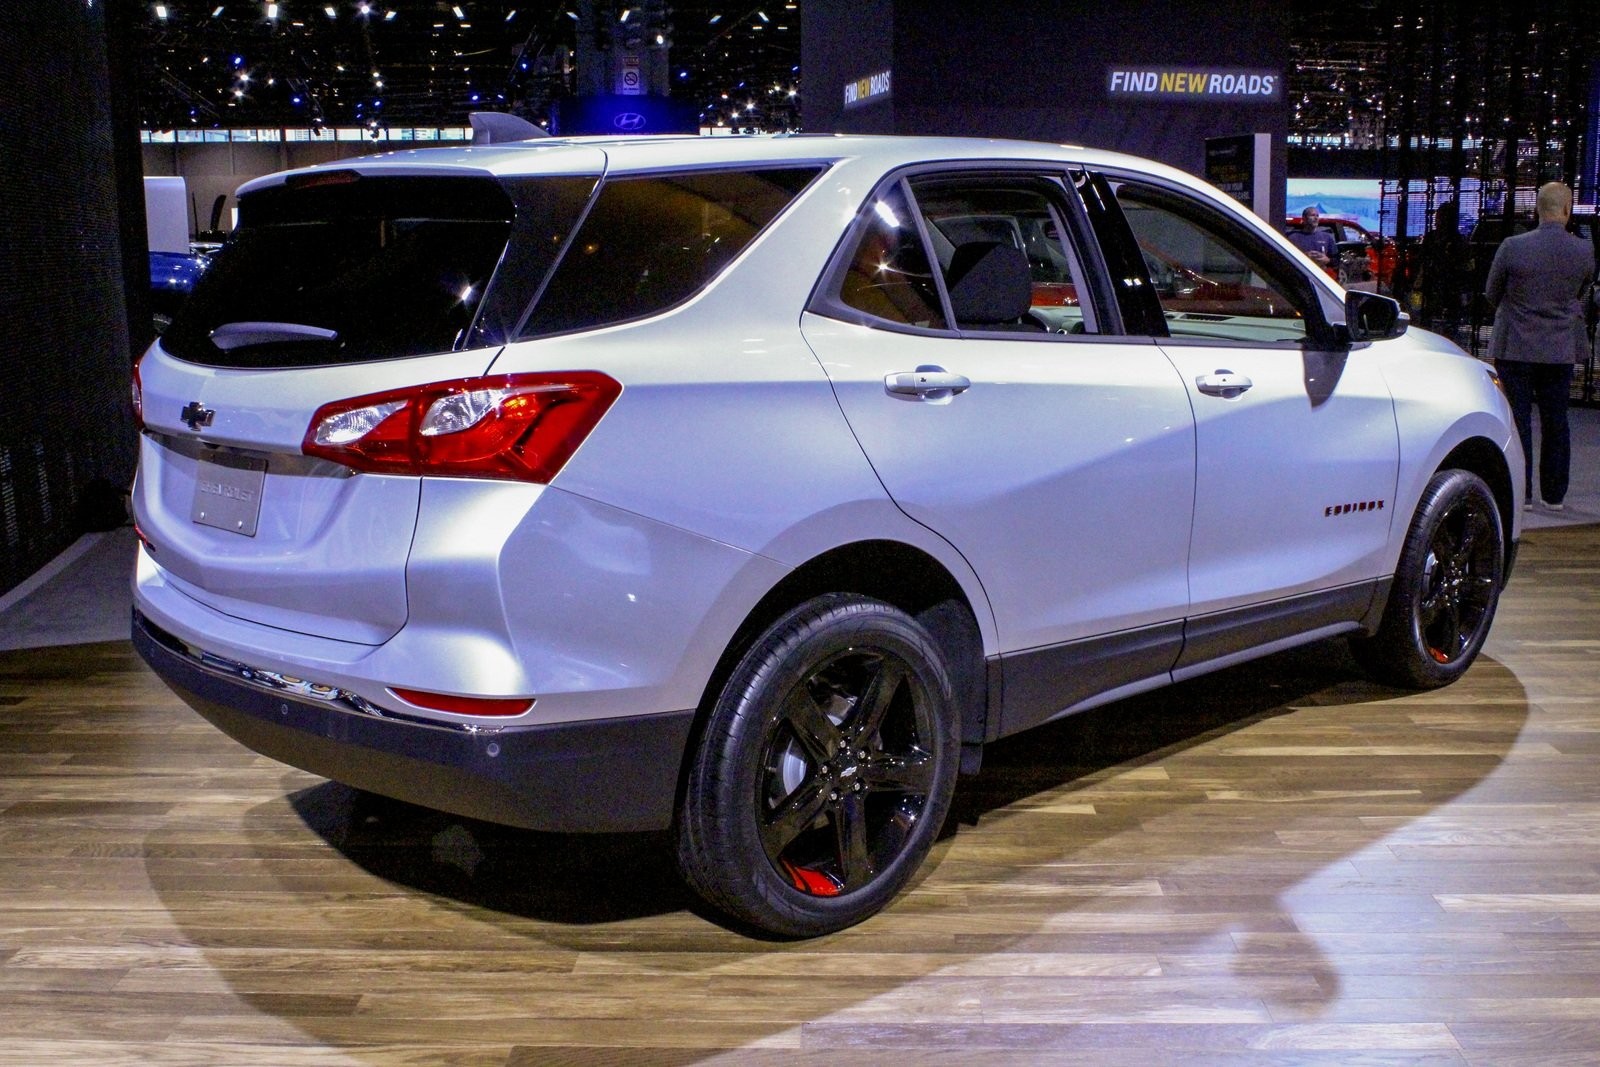 2017 Chevrolet Equinox Redline Edition - Picture 705364 | car review @ Top Speed